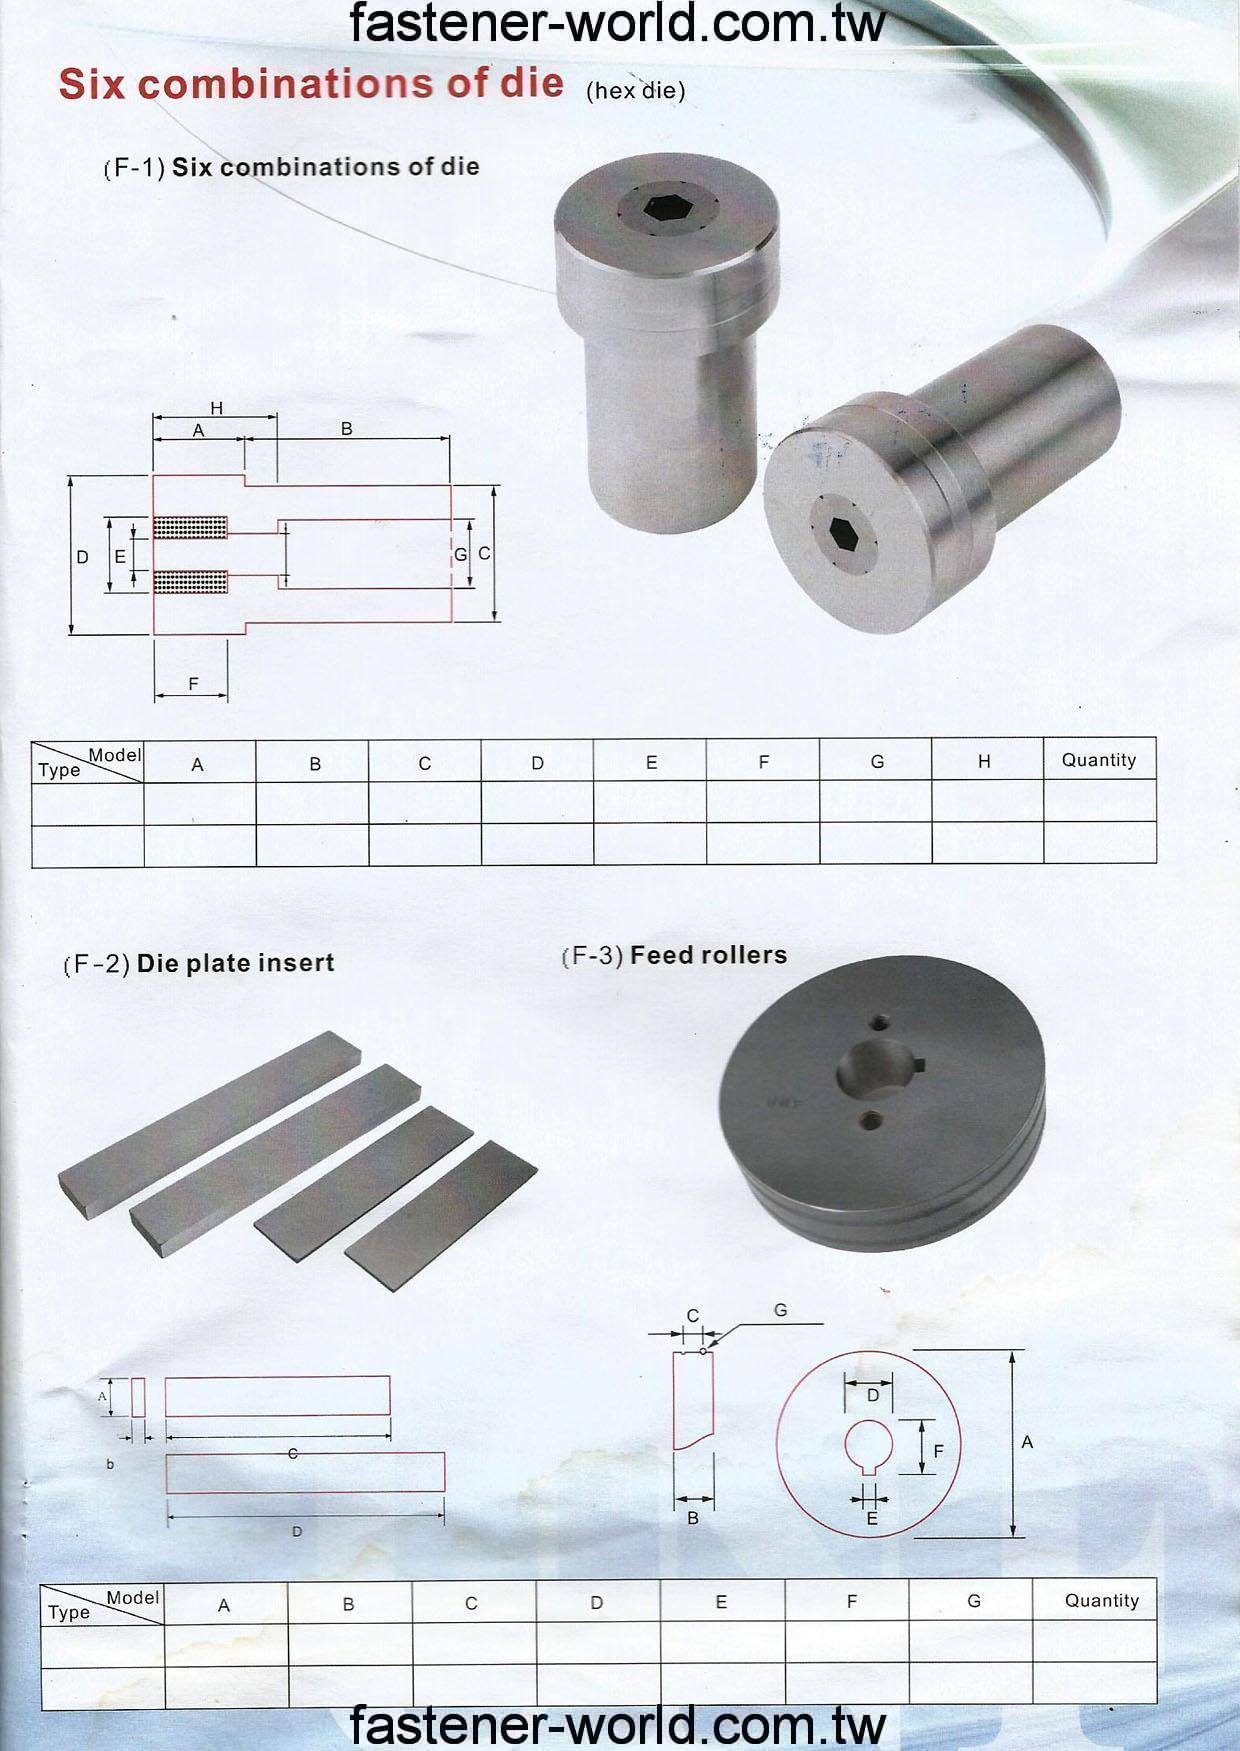 E-FONG DIE MANUFACTURE CO., LTD. Online Catalogues